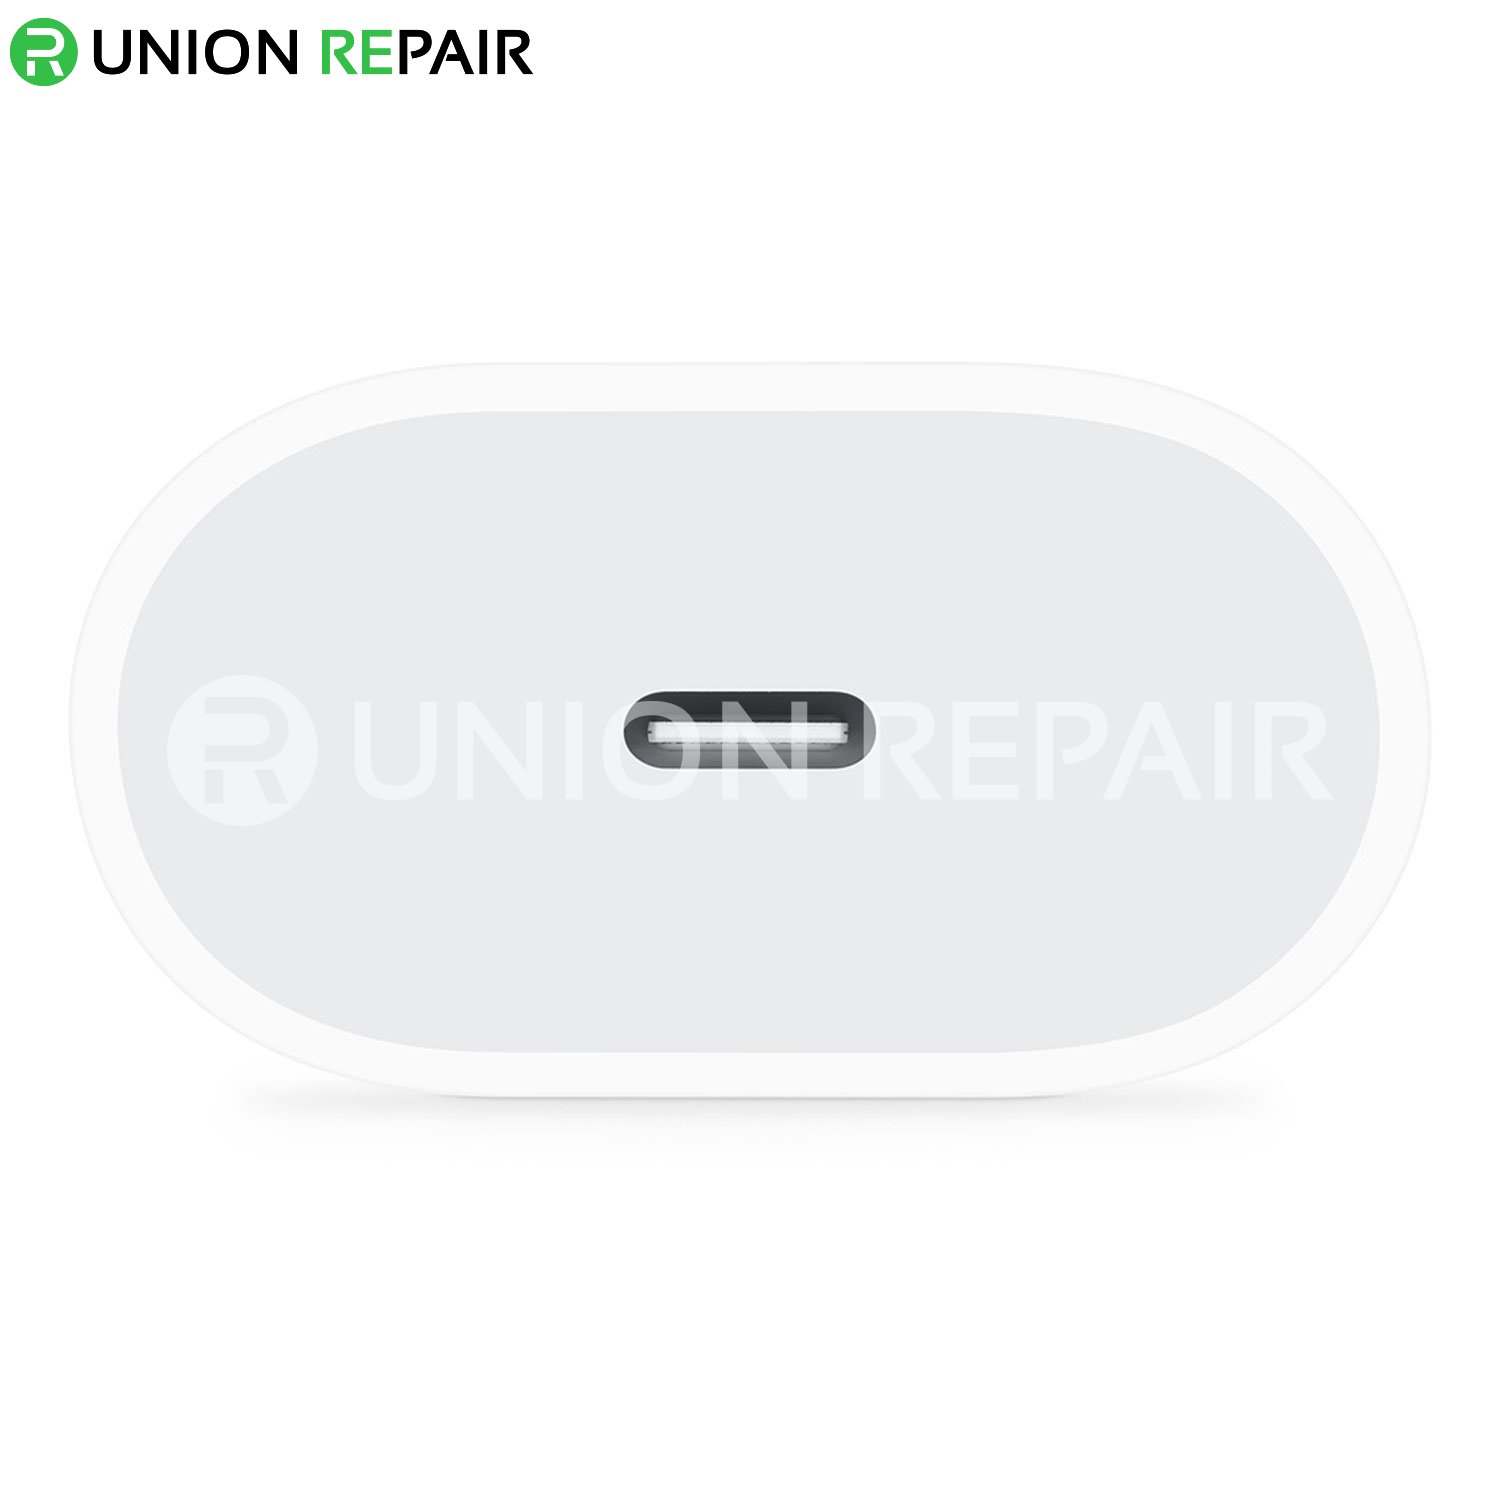 20W USB-C Power Adapter for iPhone - EU Version, fig. 3